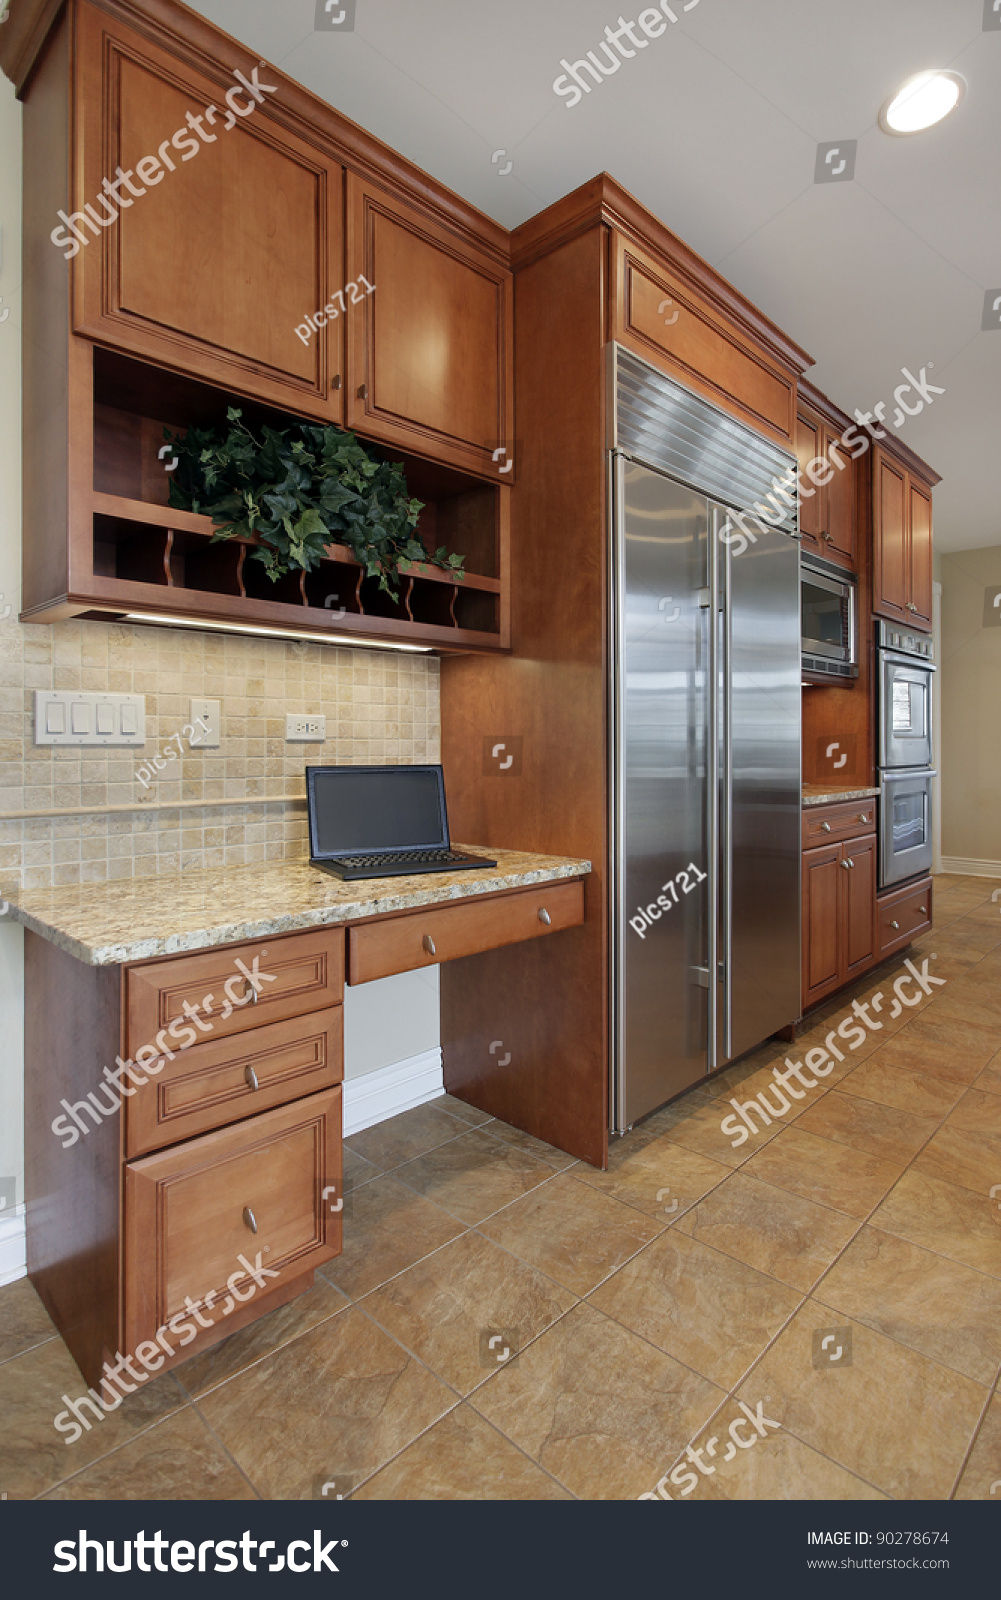 Kitchen Desk Area With Refrigerator And Wood Cabinetry